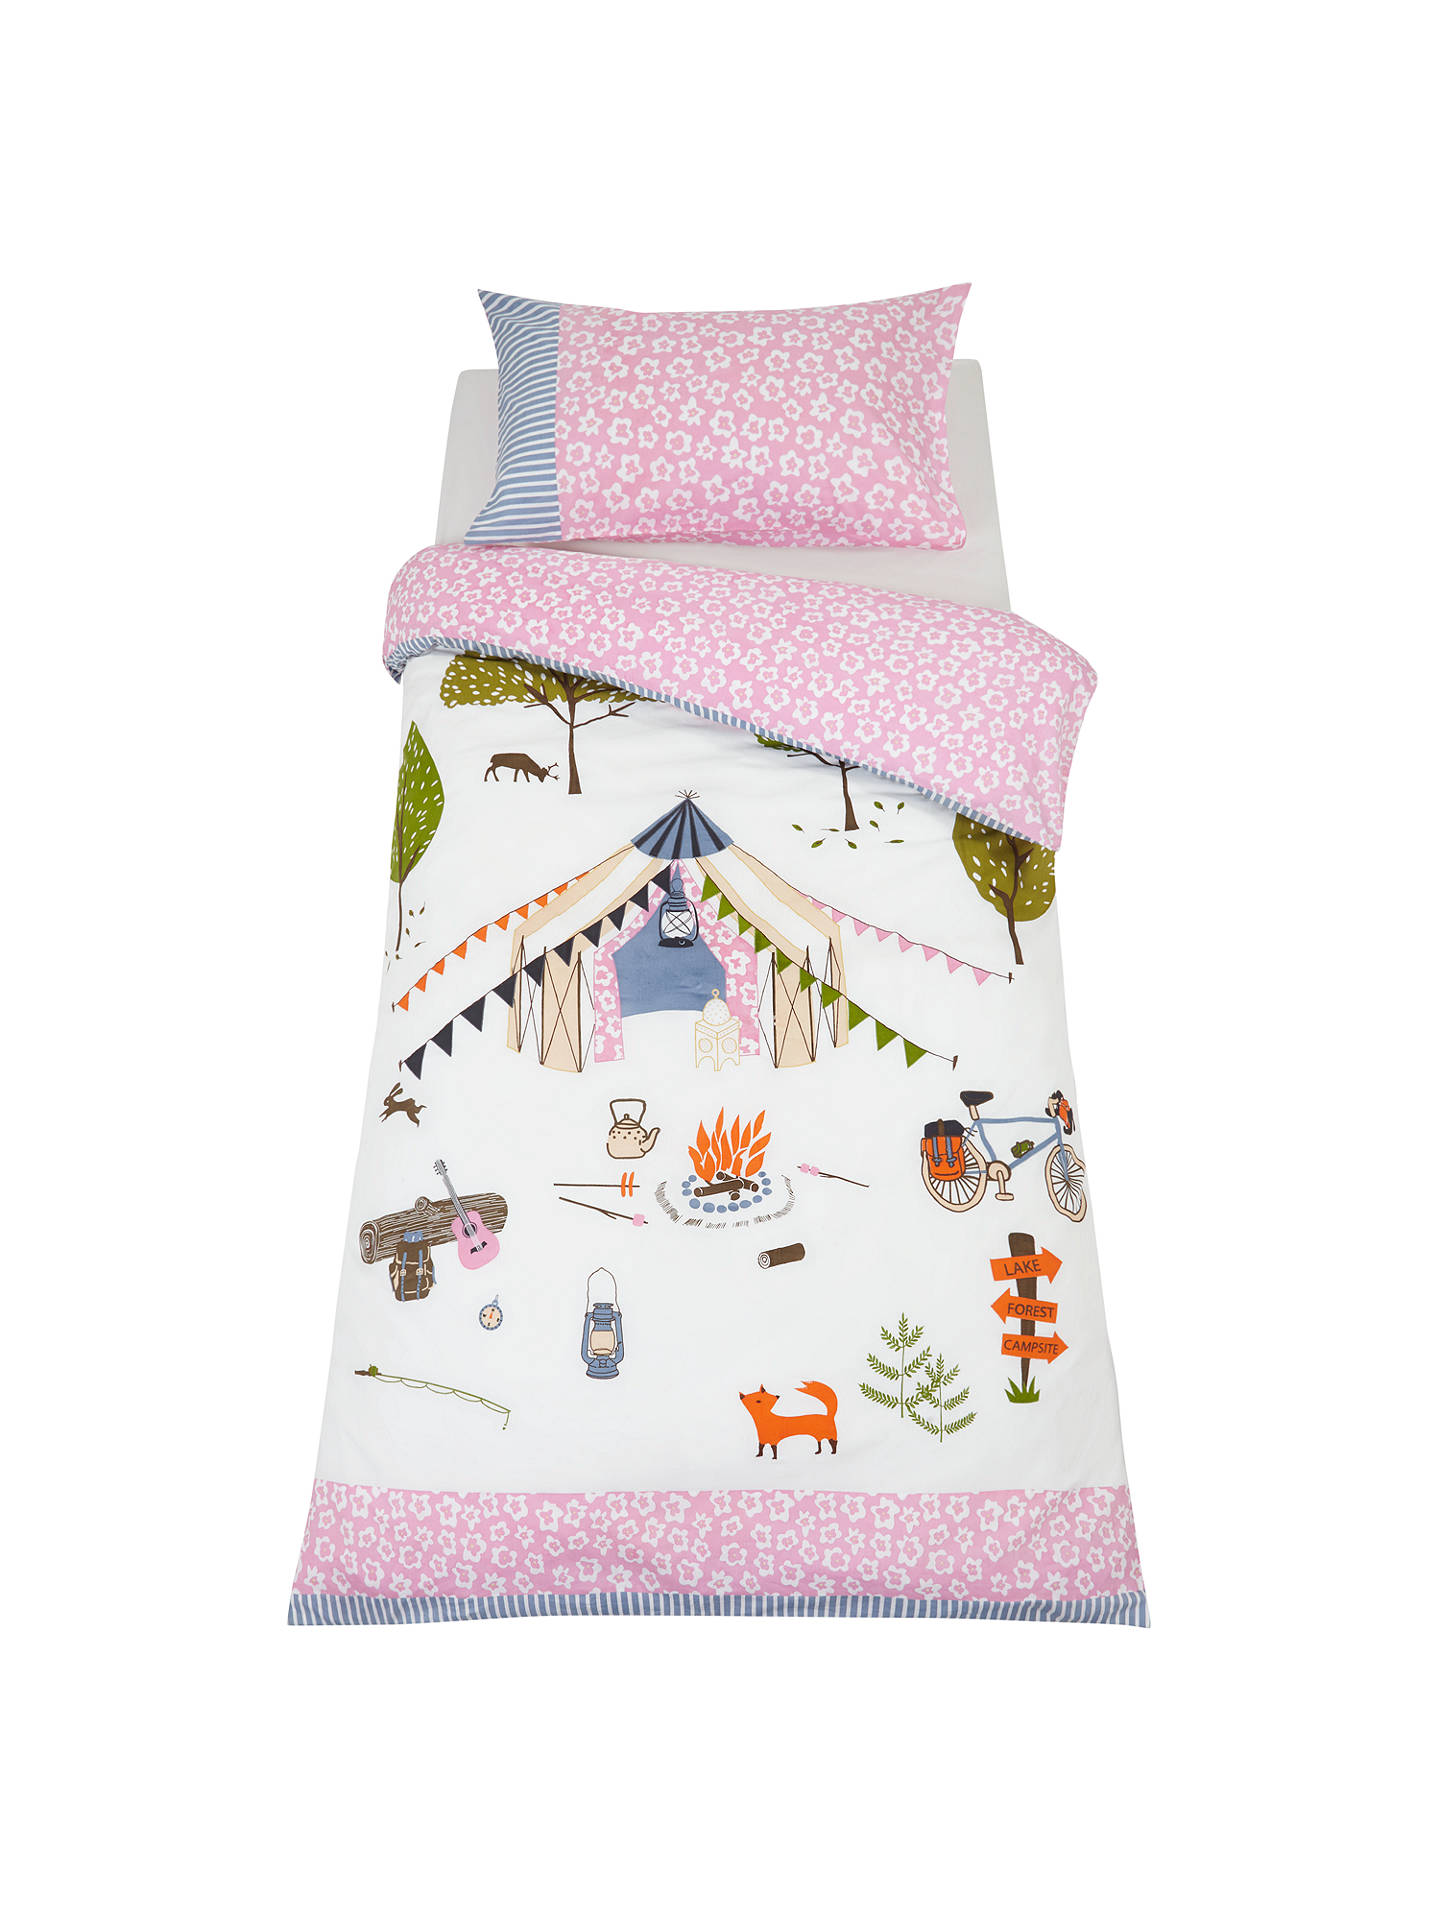 little home at John Lewis Camping Embroidered Duvet Cover and Pillowcase Set, Single